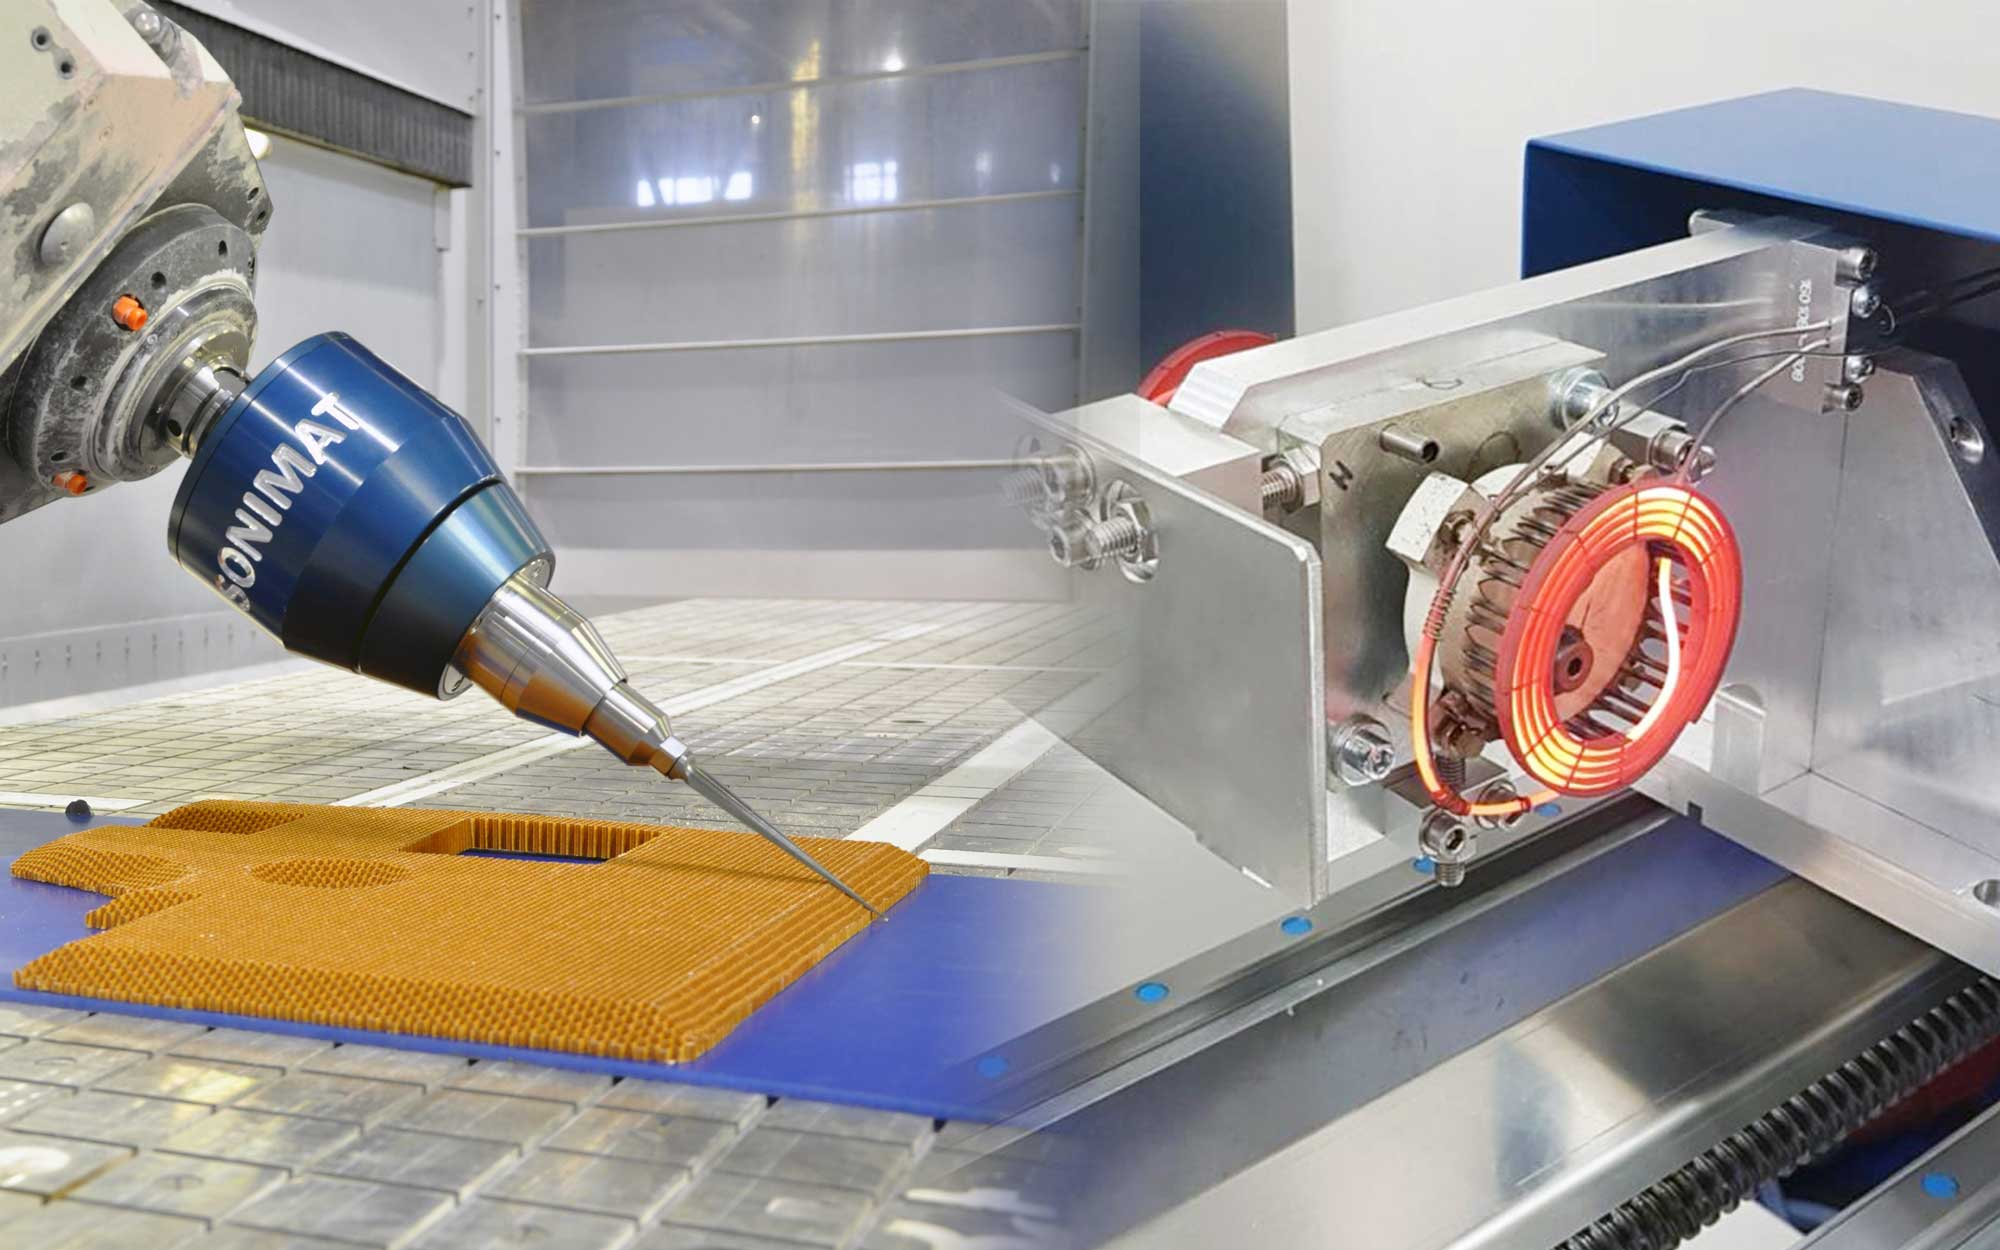 SONIMAT - Cutting and welding solutions for industry